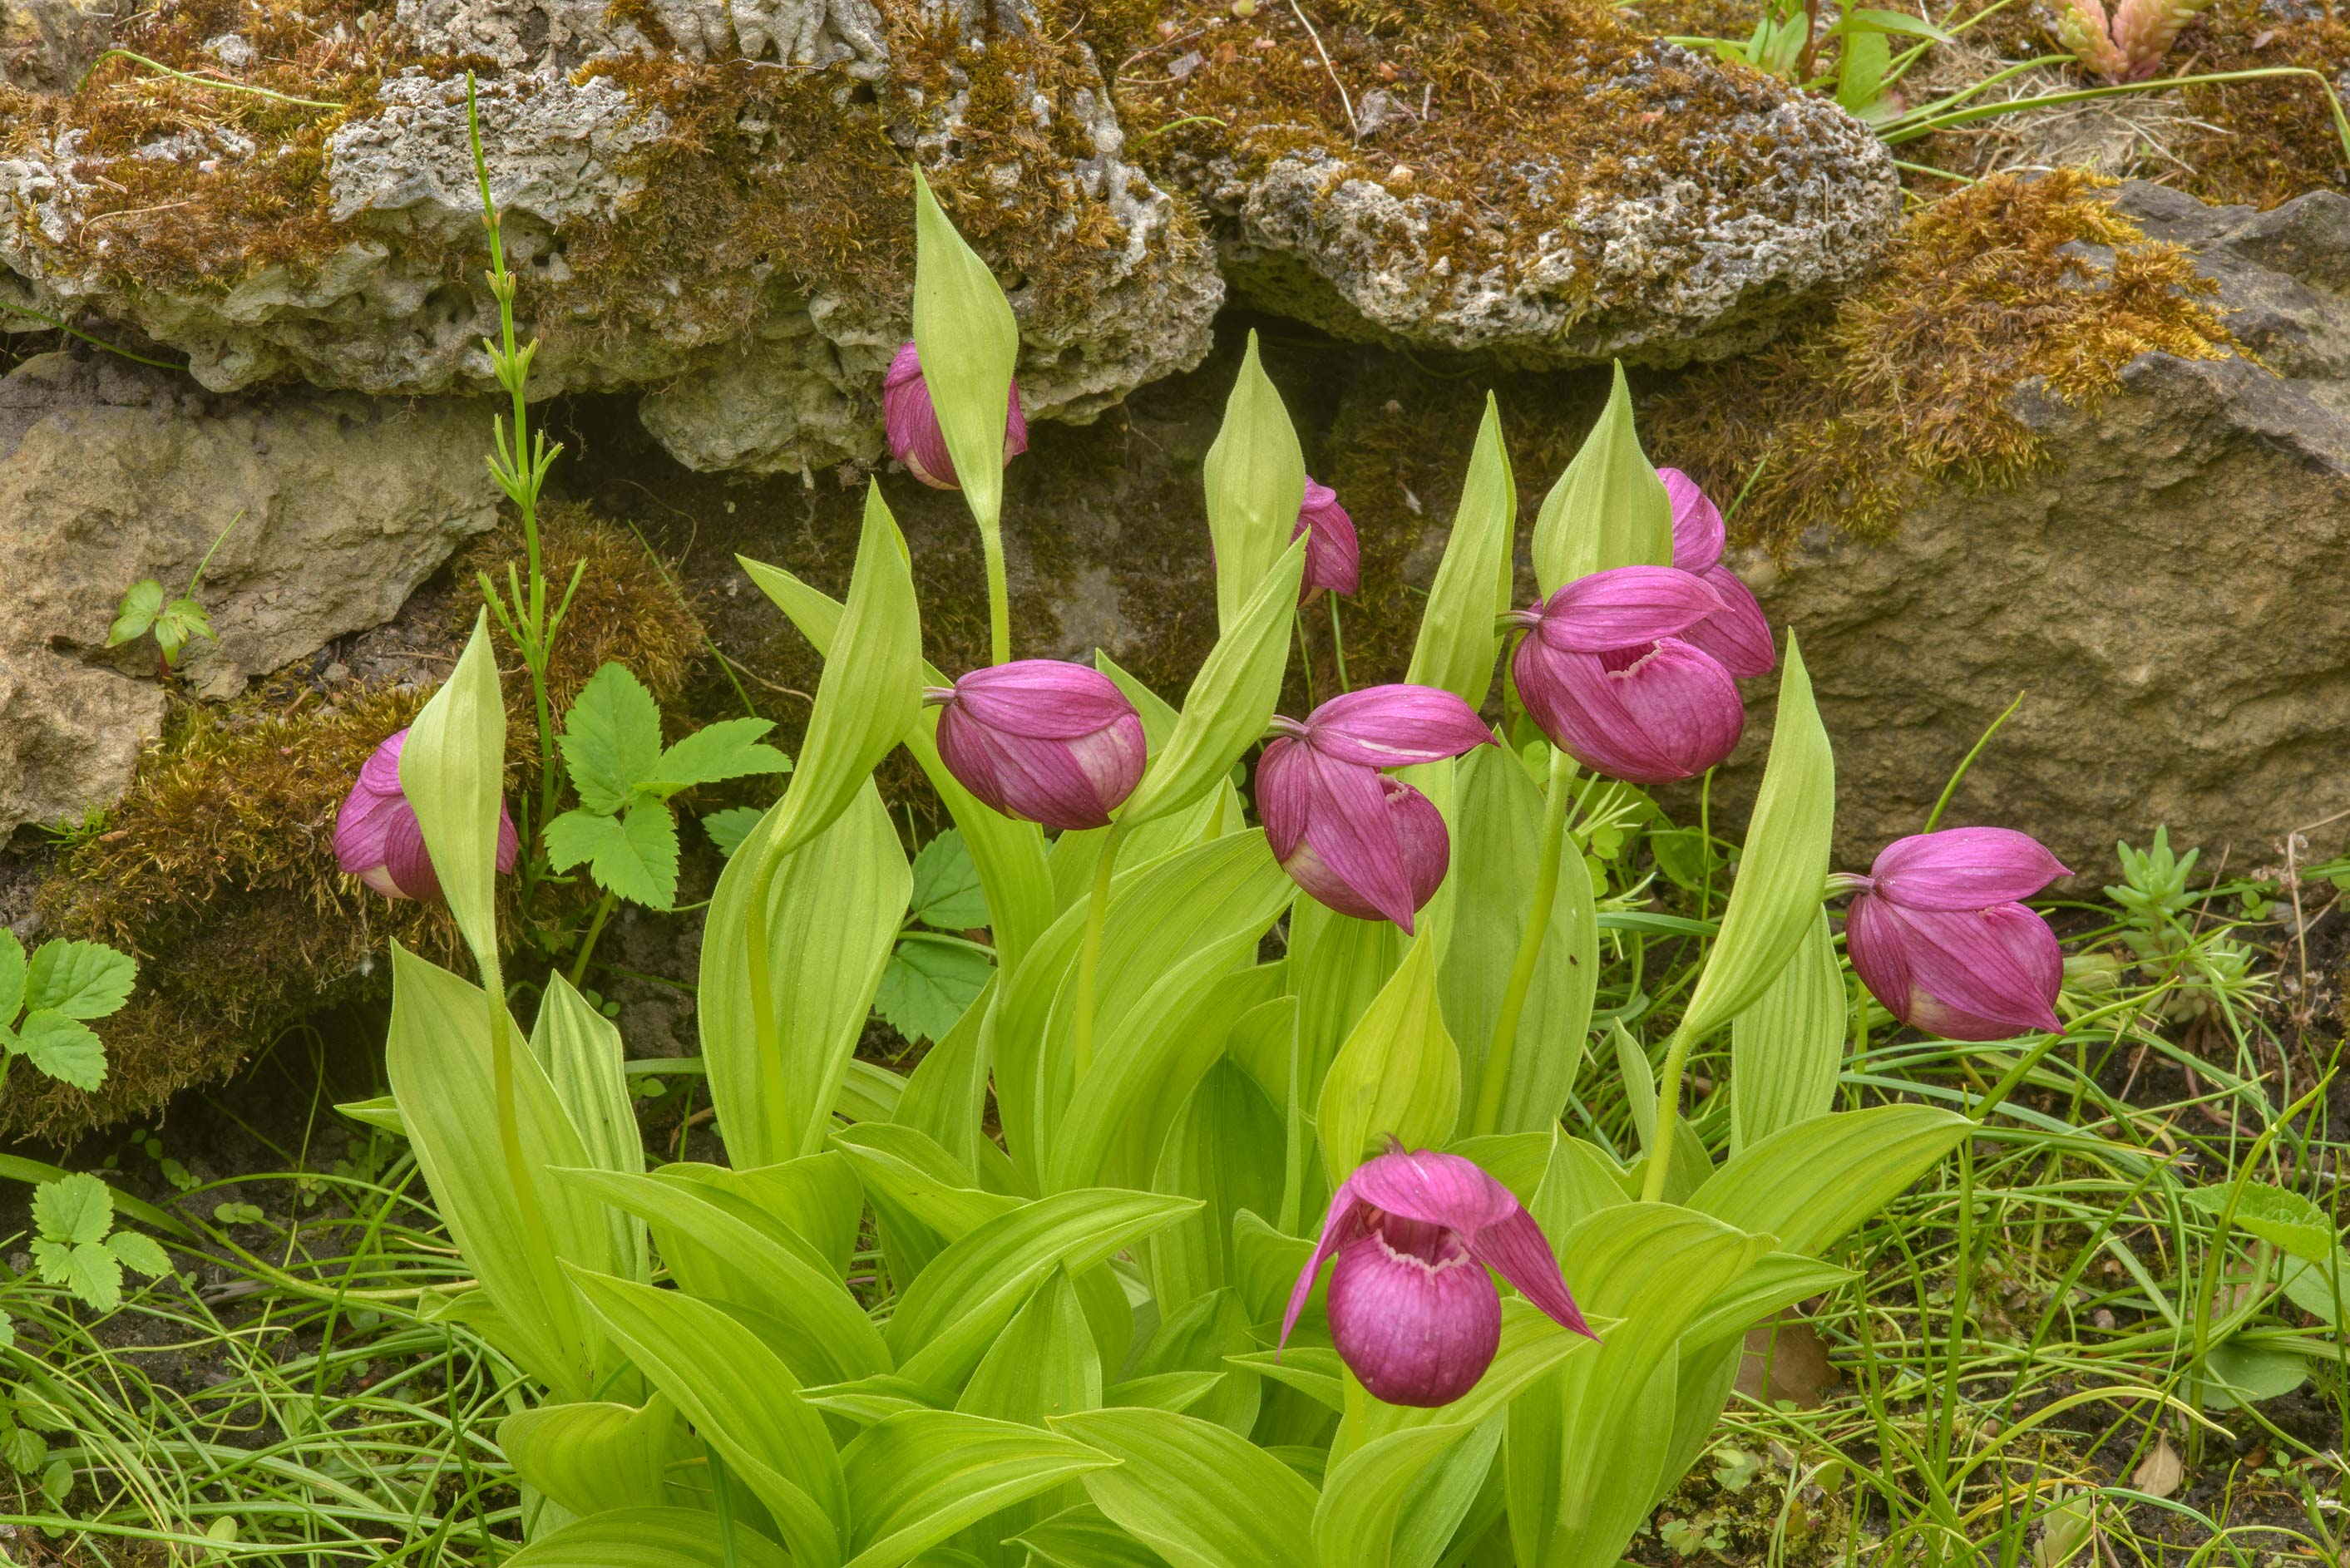 Large-flowered cypripedium (Cypripedium...Institute. St.Petersburg, Russia